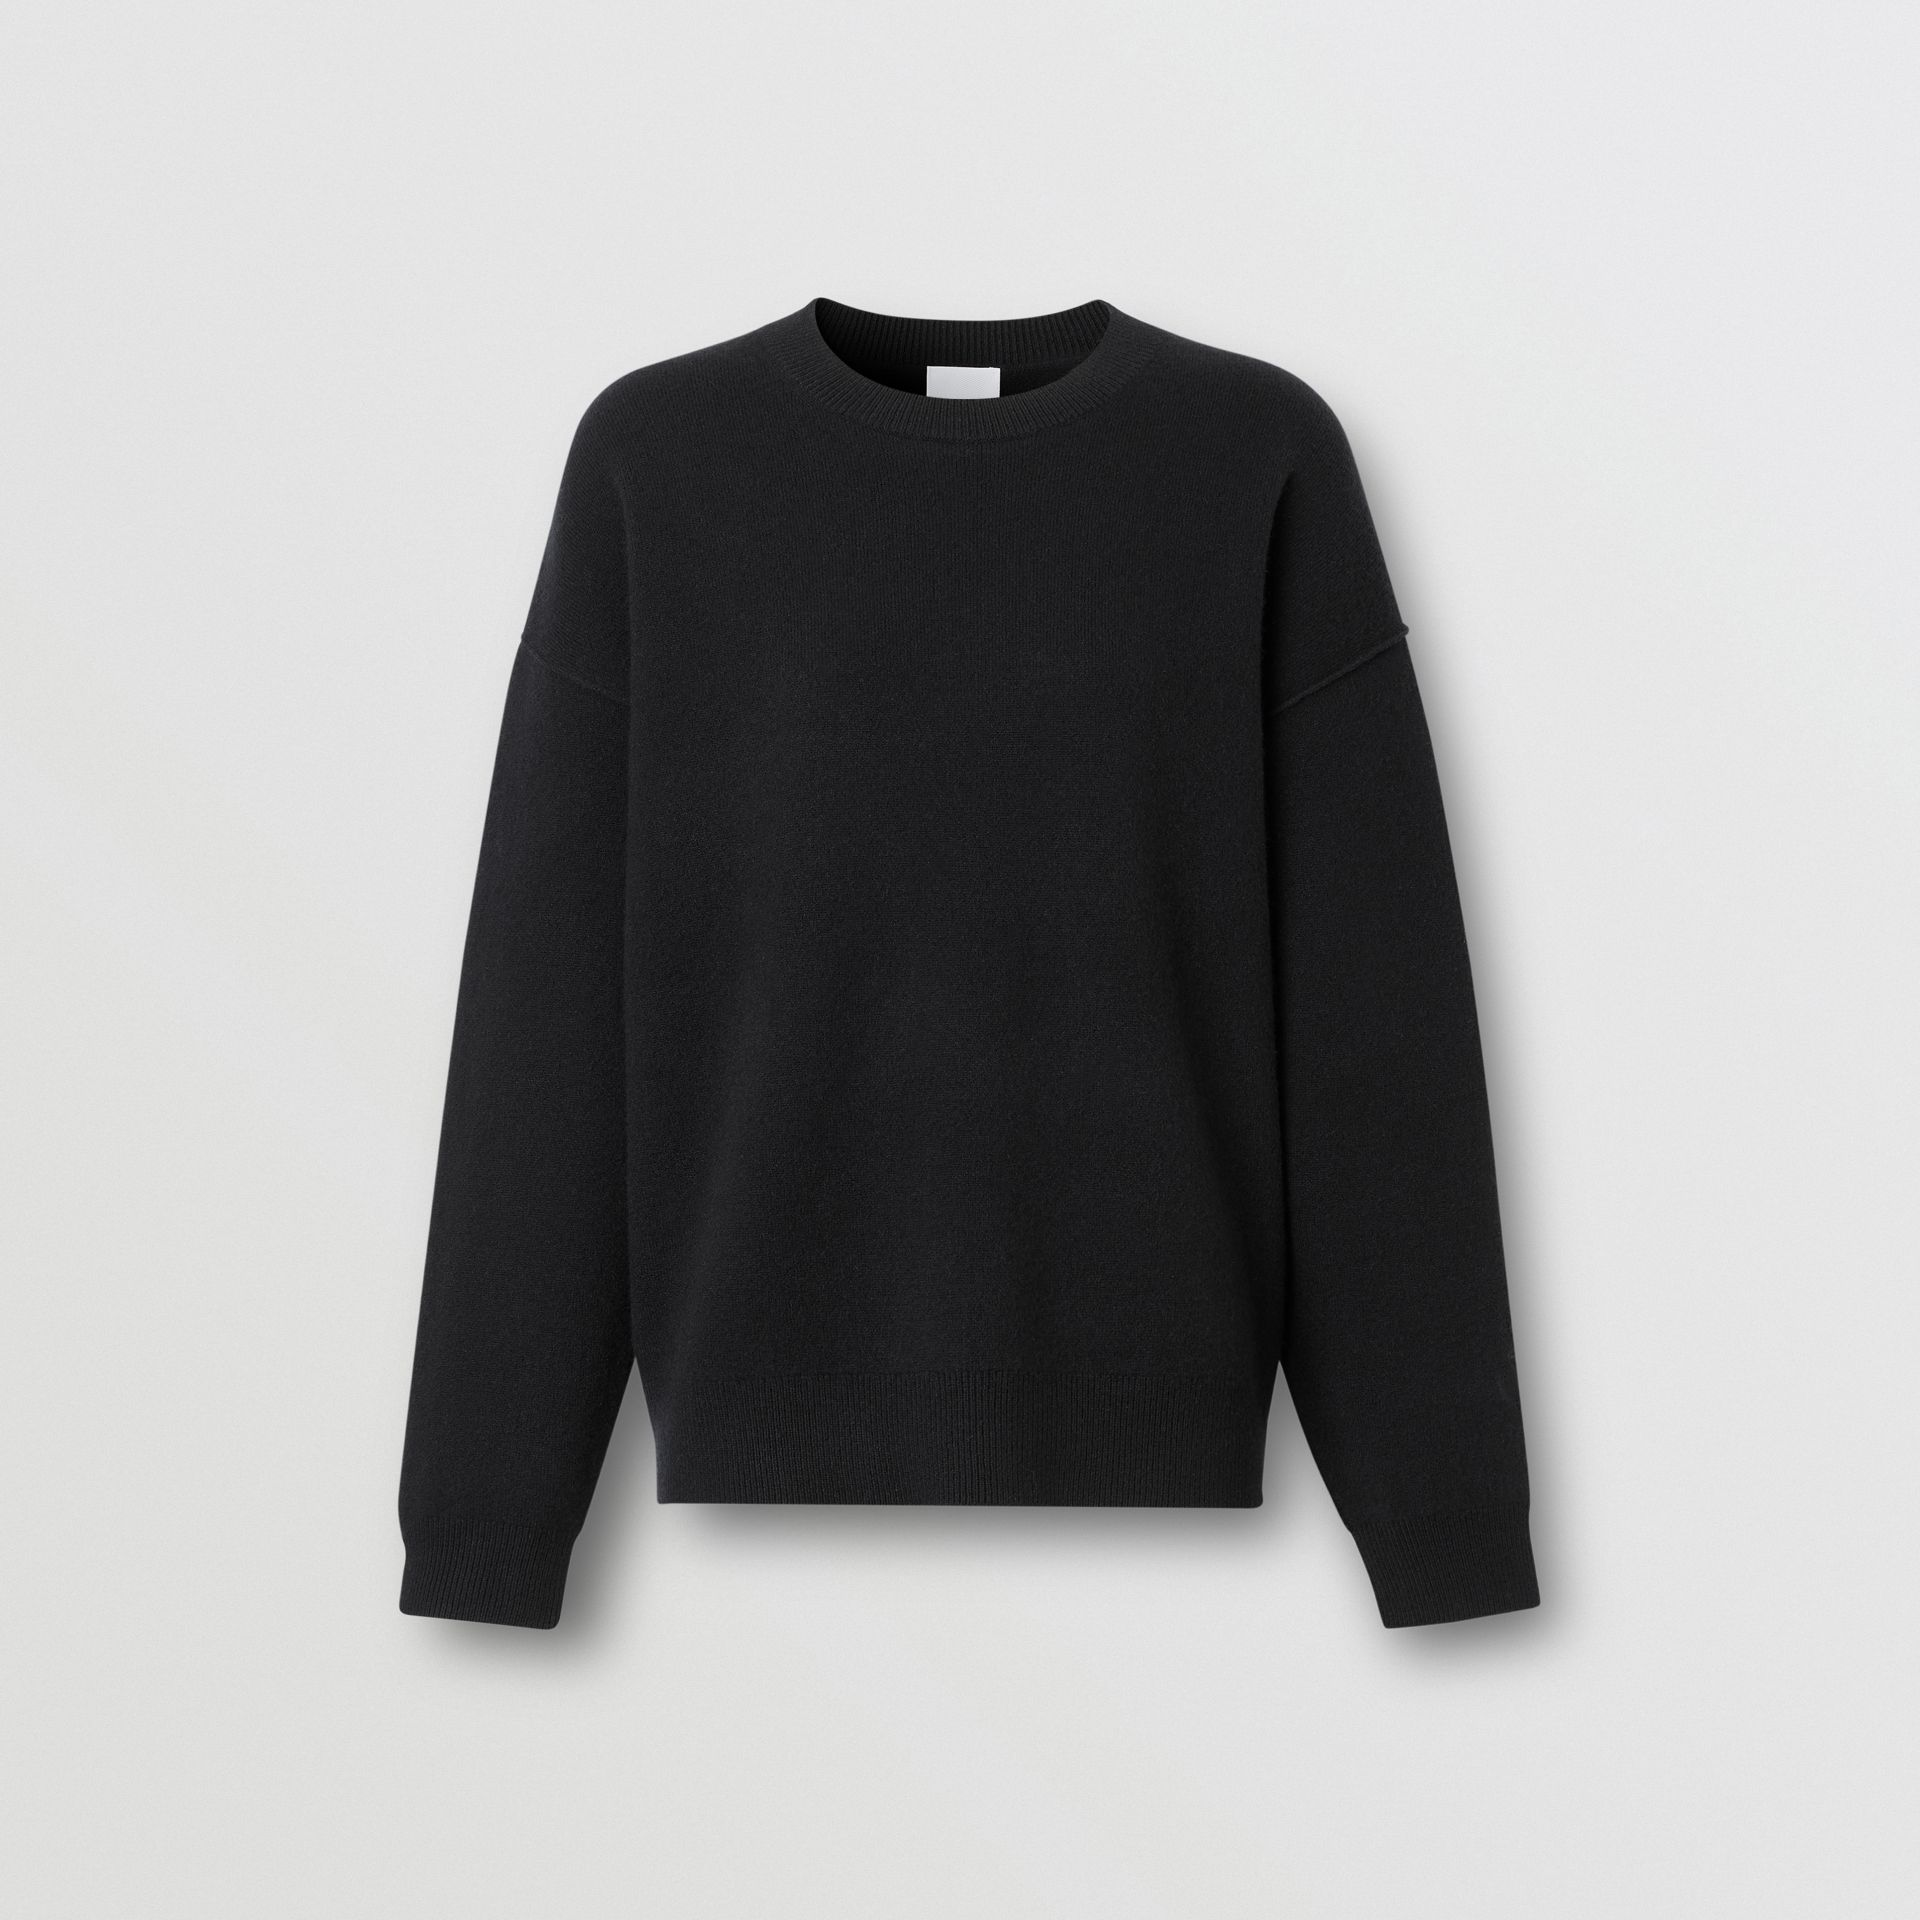 Monogram Motif Cashmere Blend Sweater in Black - Women | Burberry - gallery image 3